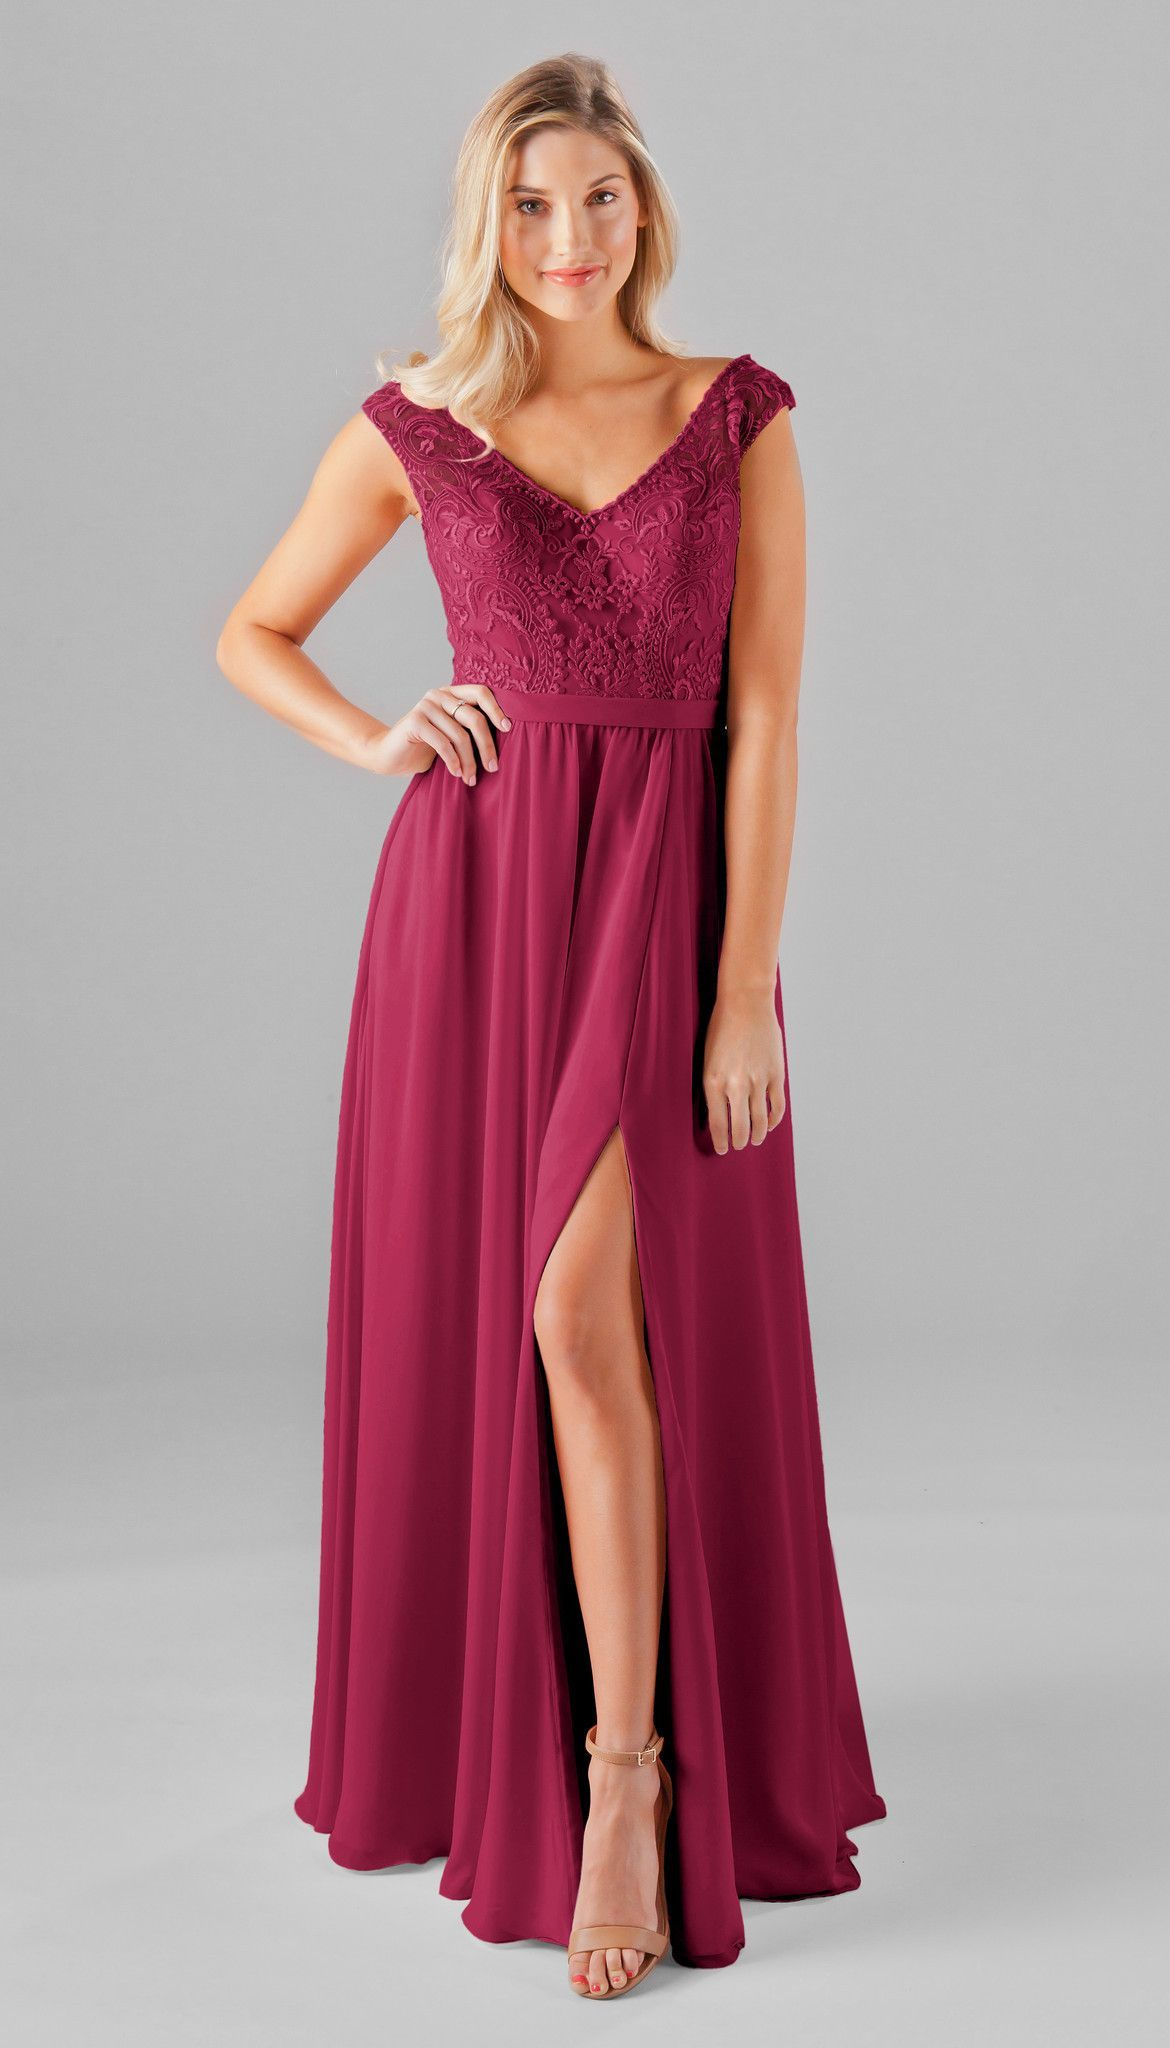 72a65b9e6db Made from soft chiffon fabric and our EXCLUSIVE embroidered lace pattern